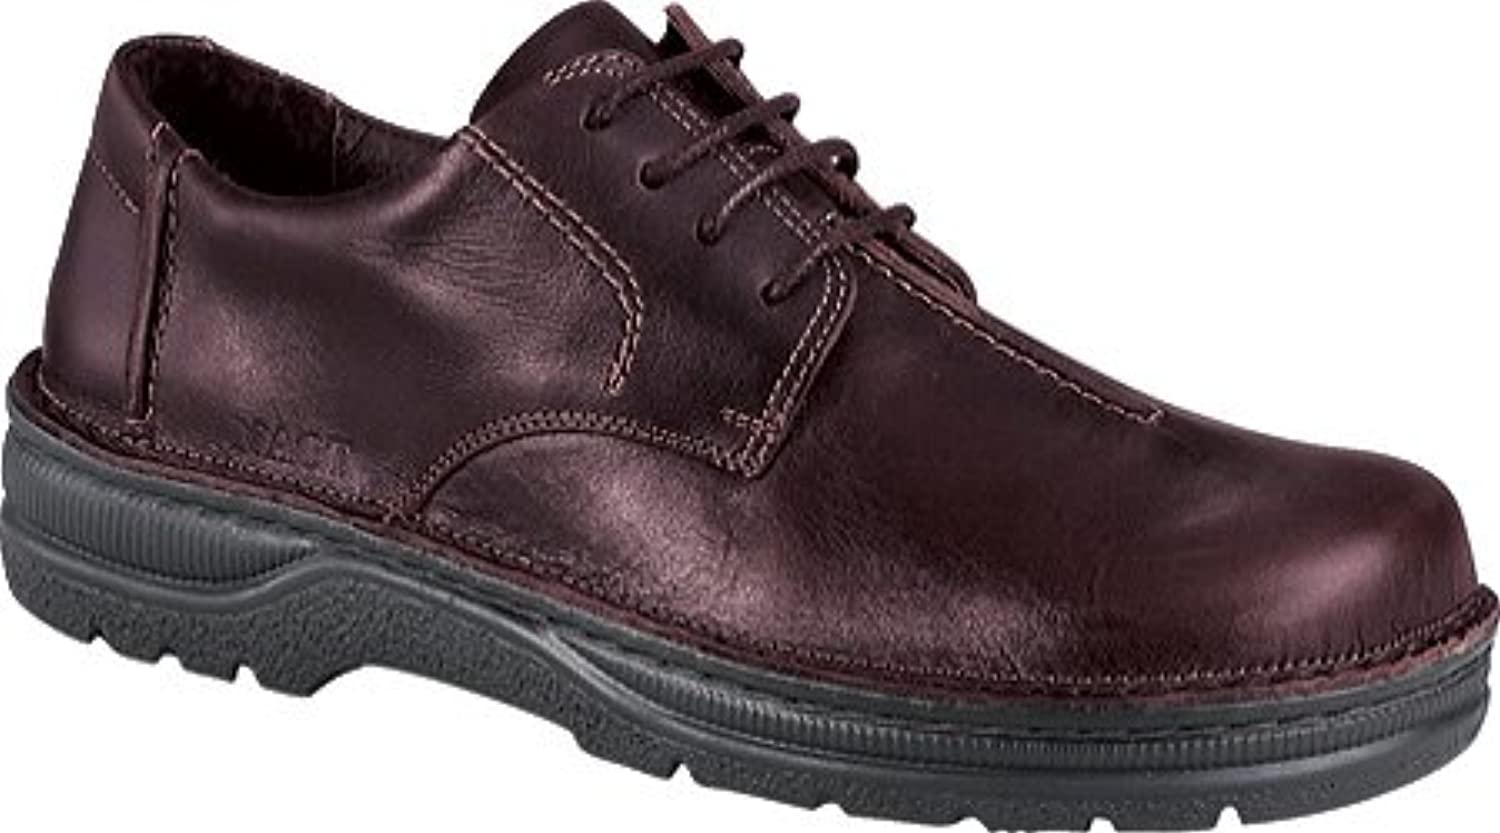 Naot Men's Yukon lace up shoe